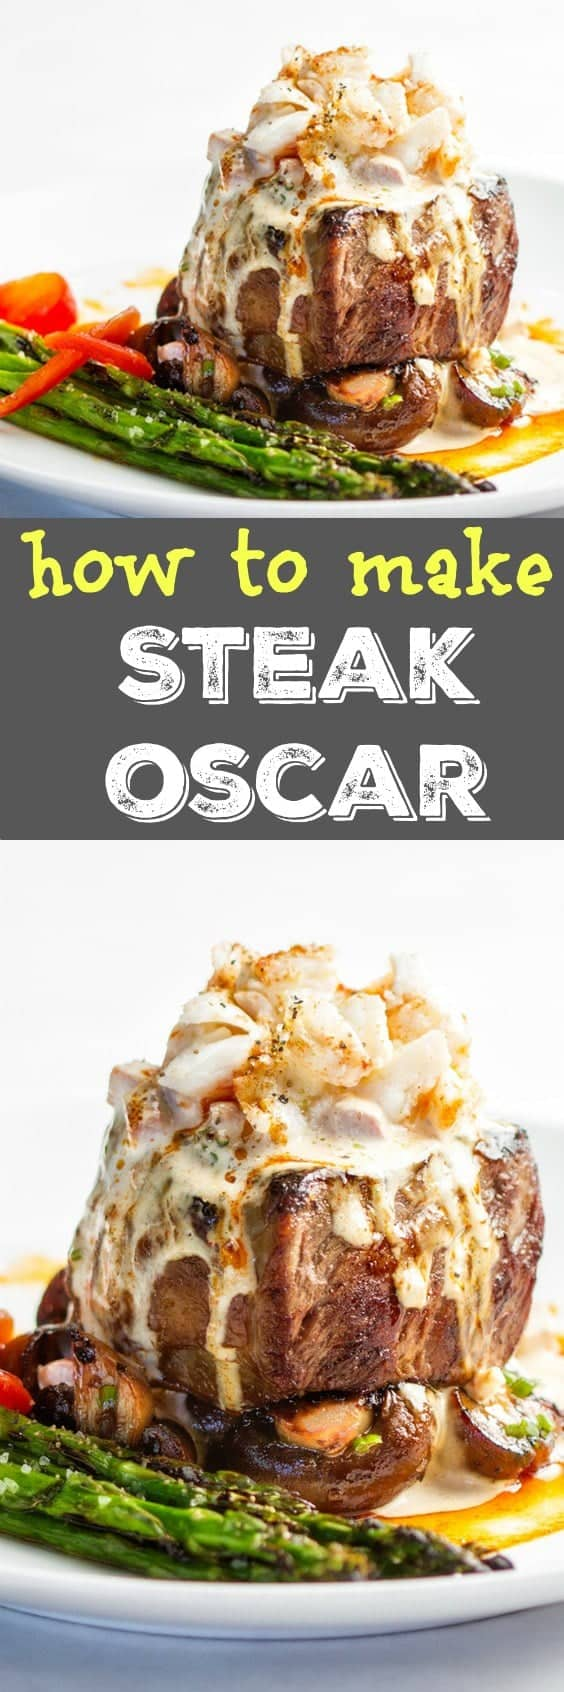 Steak Oscar Recipe -Crab and tenderloin steaks with hollandaise, low carb and fabulous! #steak #keto #lowcarb